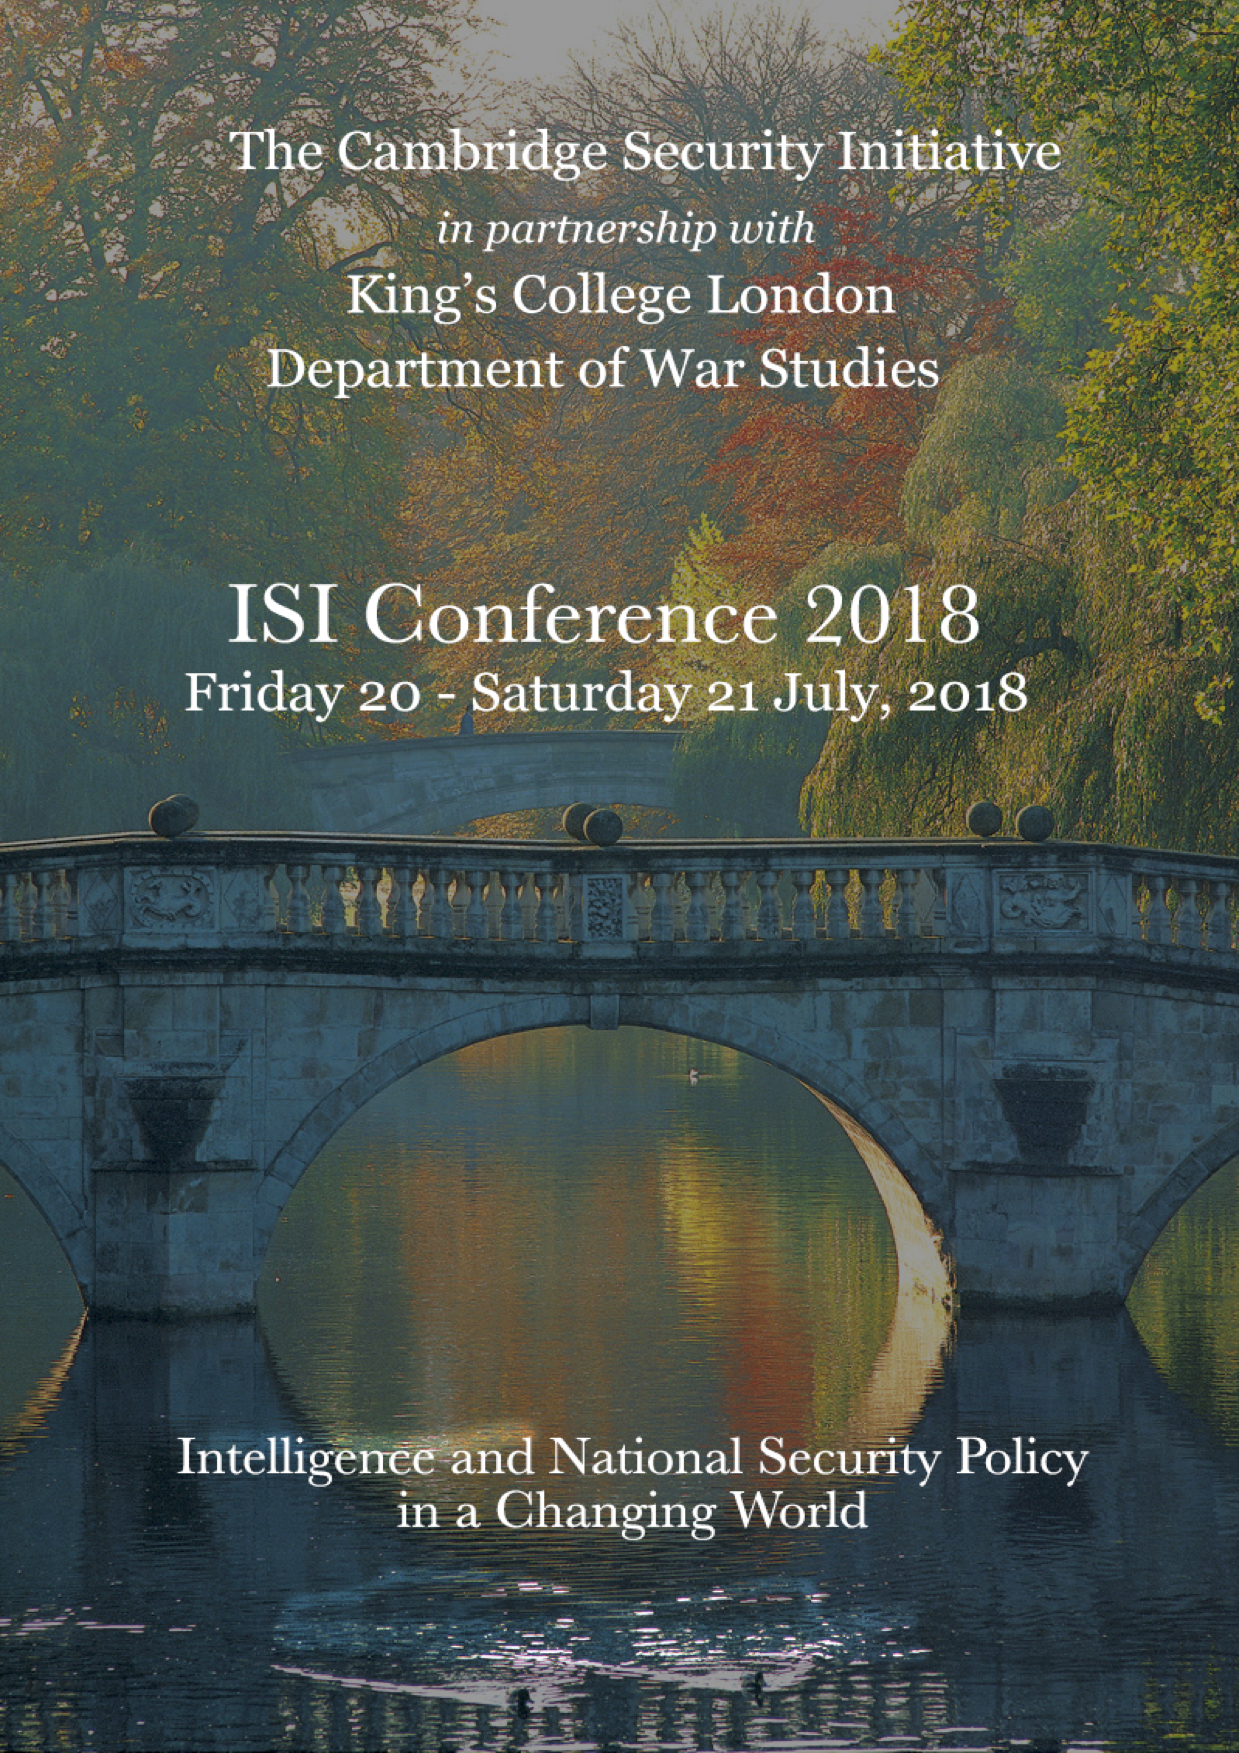 isi 2018 1